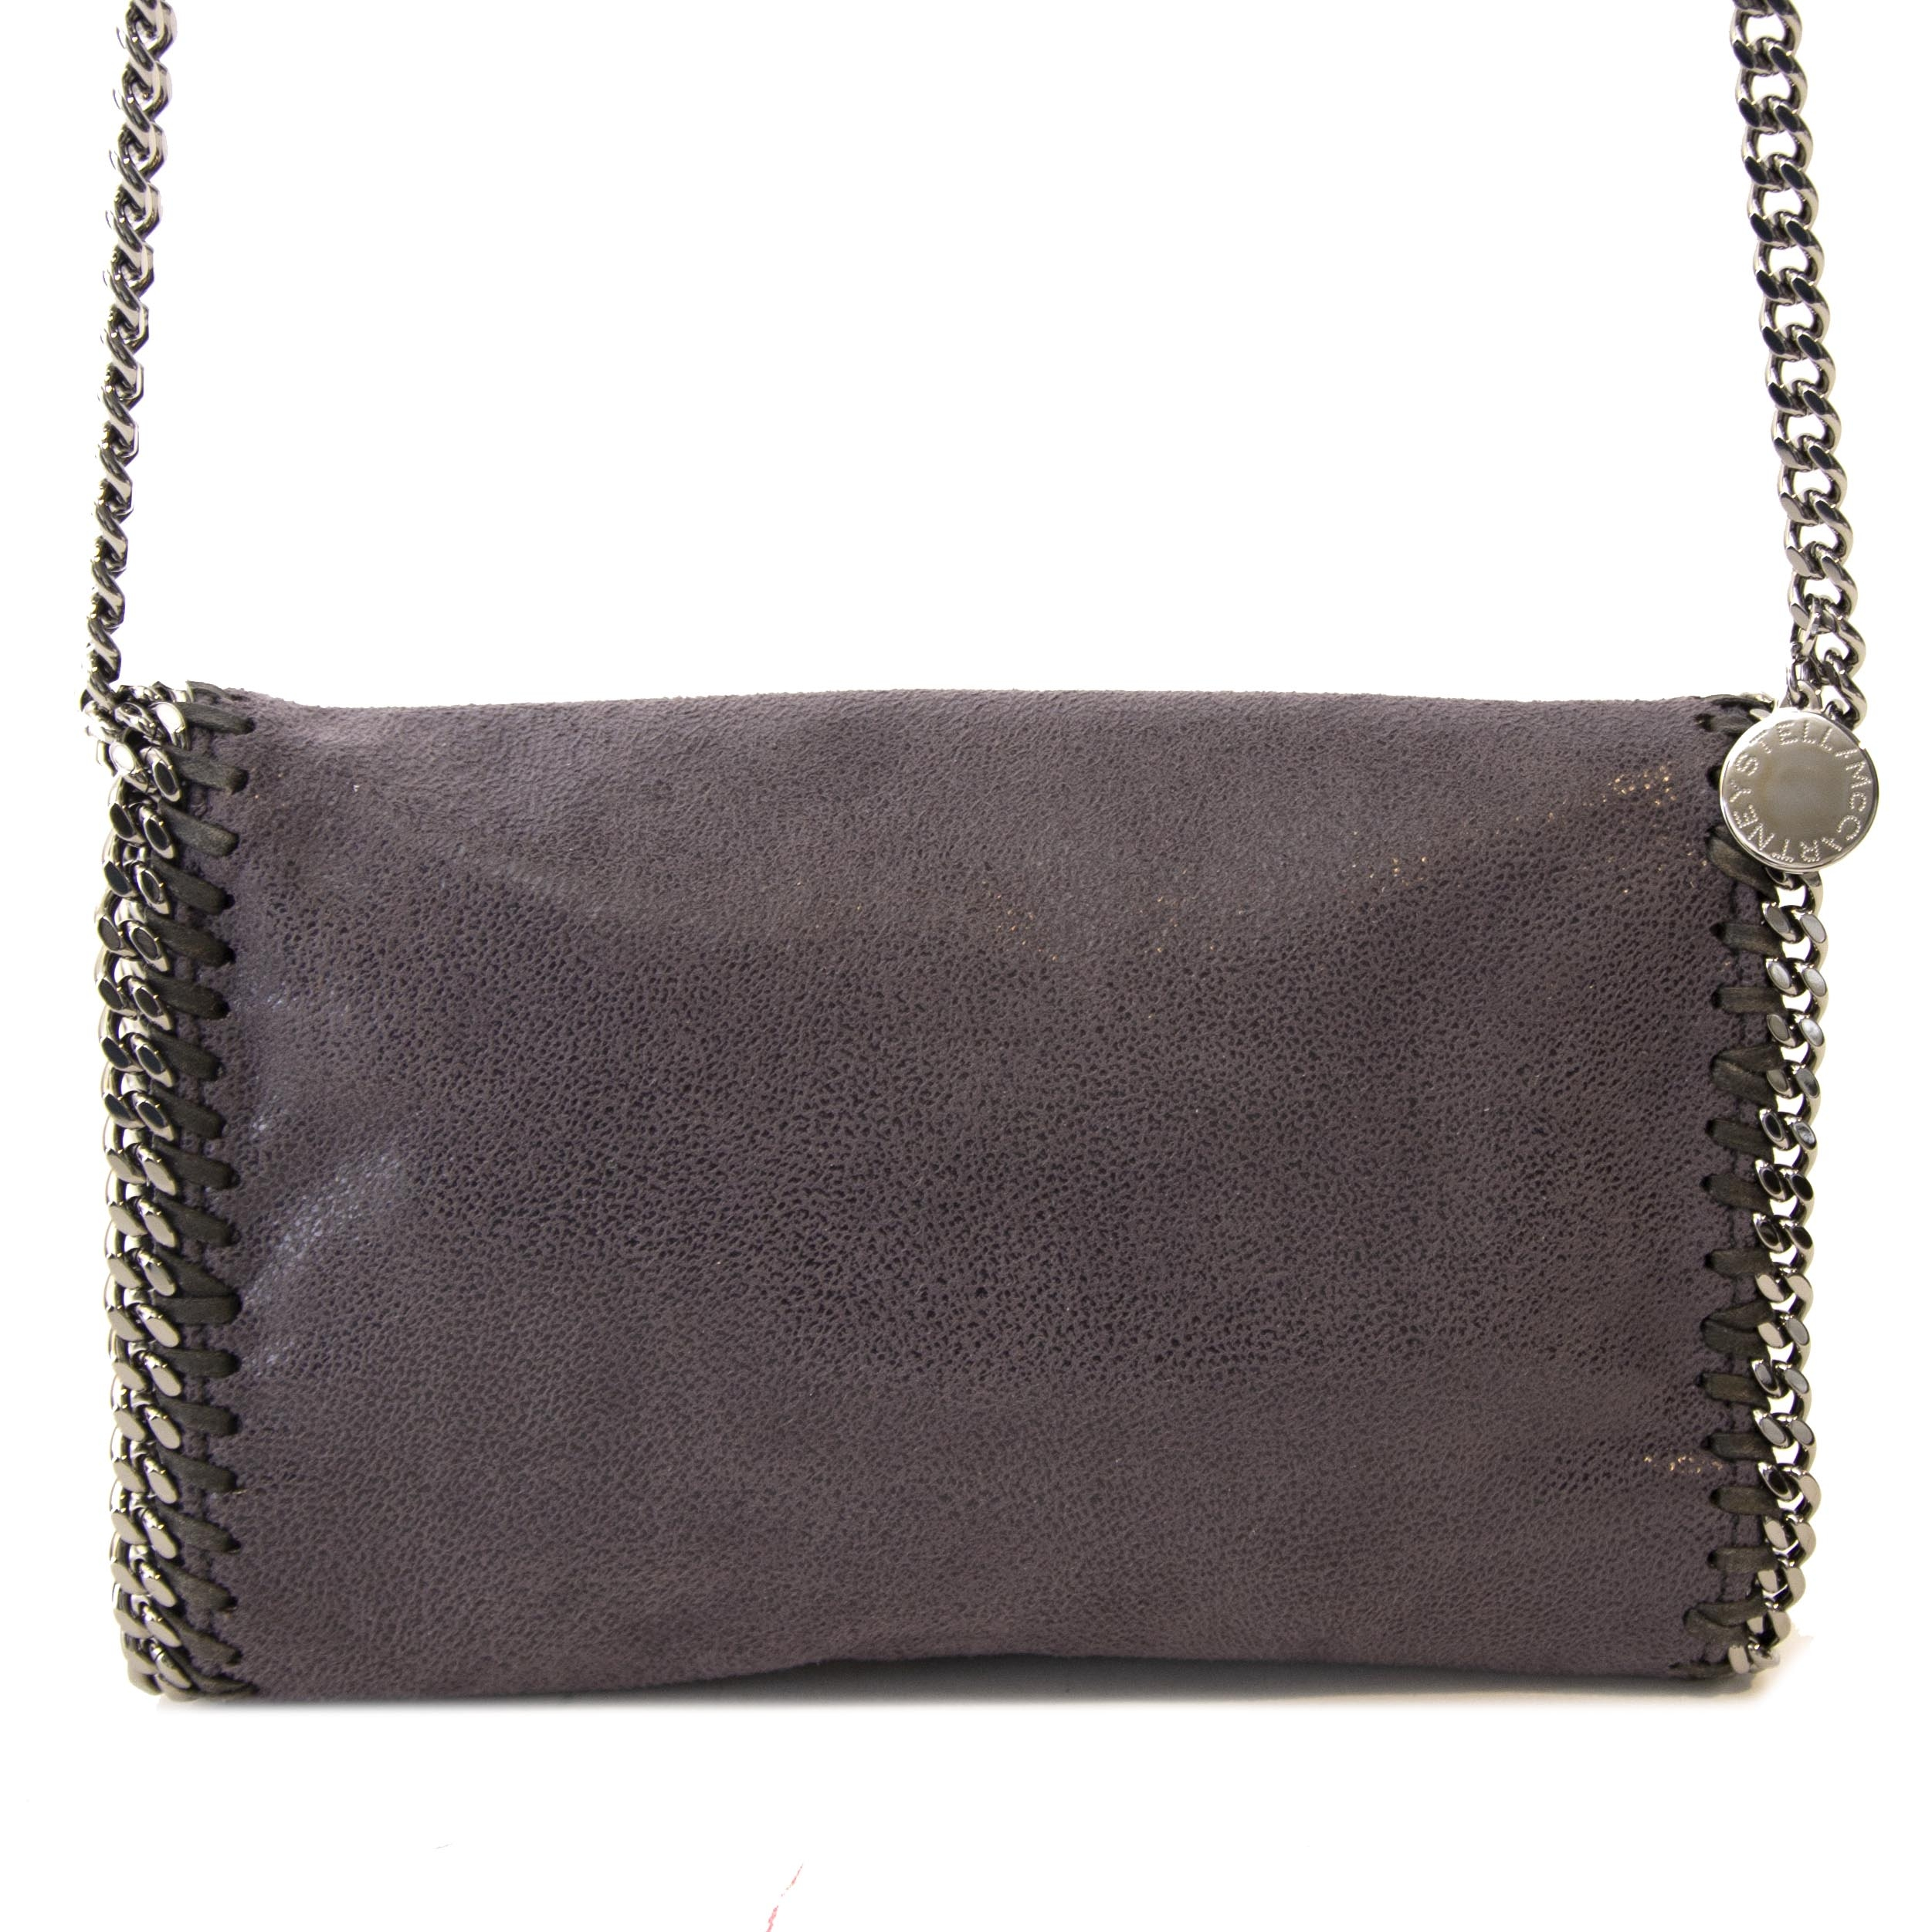 Authentieke tweedehands vintage nieuwe Stella McCartney Grey Falabella Cross Body Bag koop online webshop LabelLOV